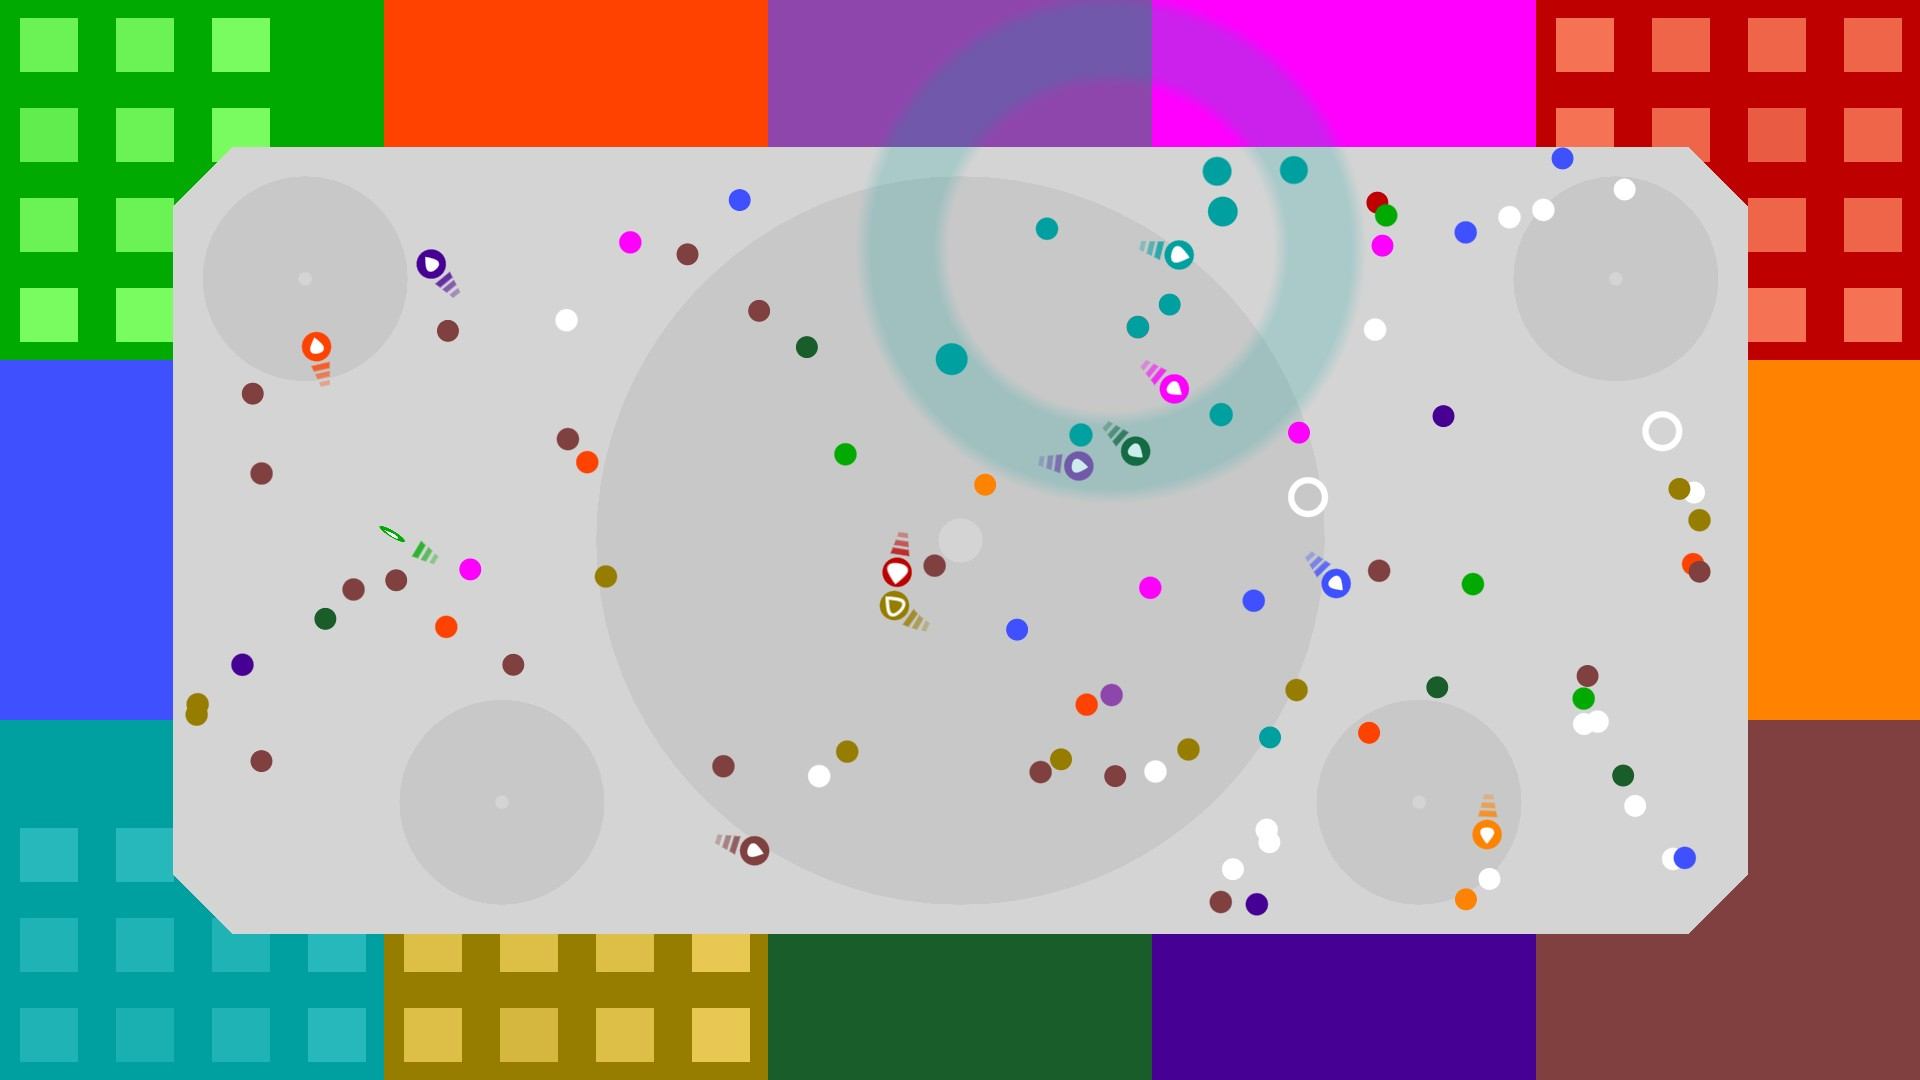 12 orbits ◦ local multiplayer for 2, 3, 4, 5, 6... 12 players ◦ Free